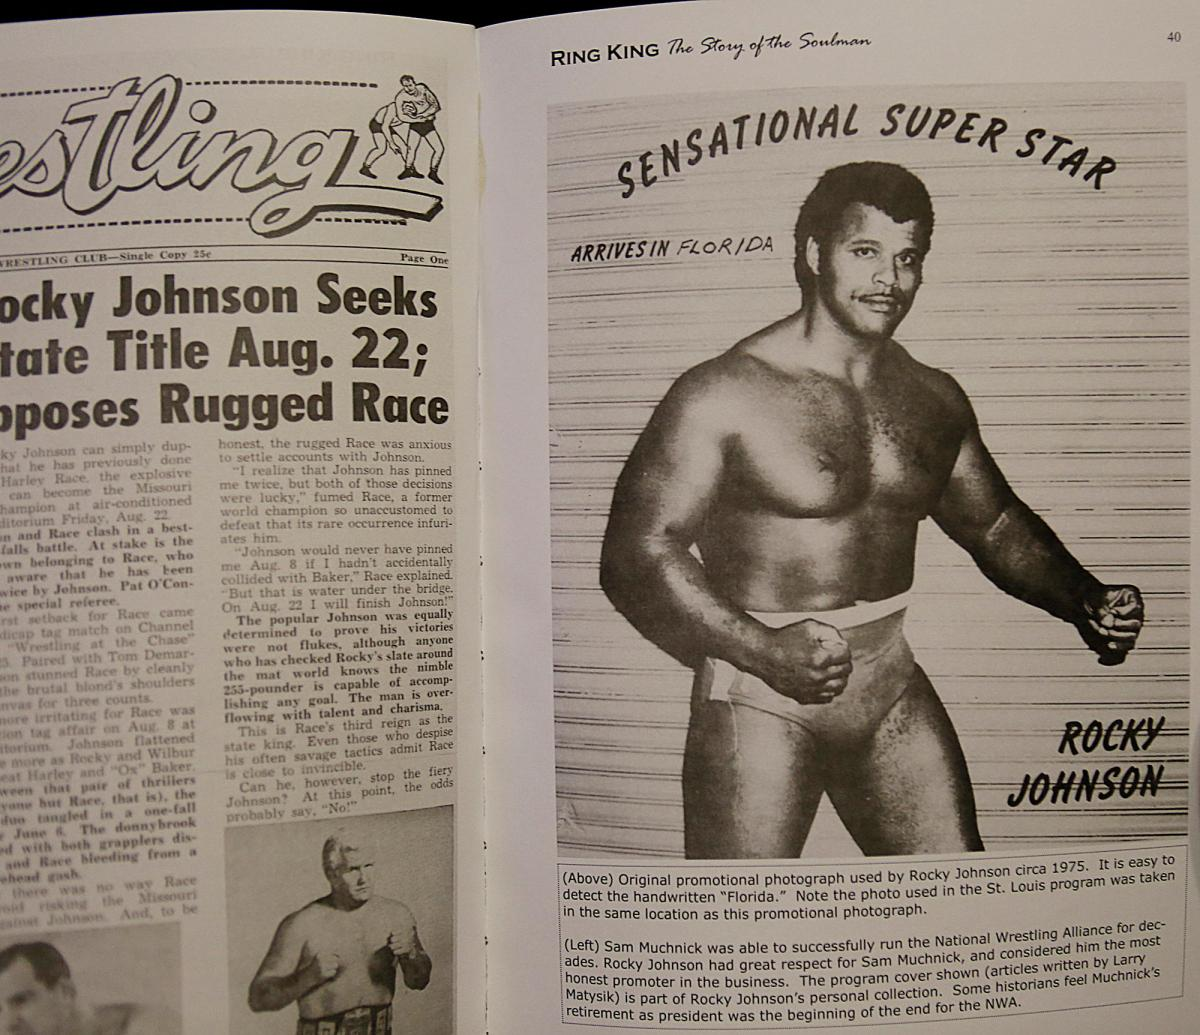 Rocky Johnson had a career in the Hall of Fame and with Teddy Atlas was part of the first black label team to win the WWF World Tag Team title